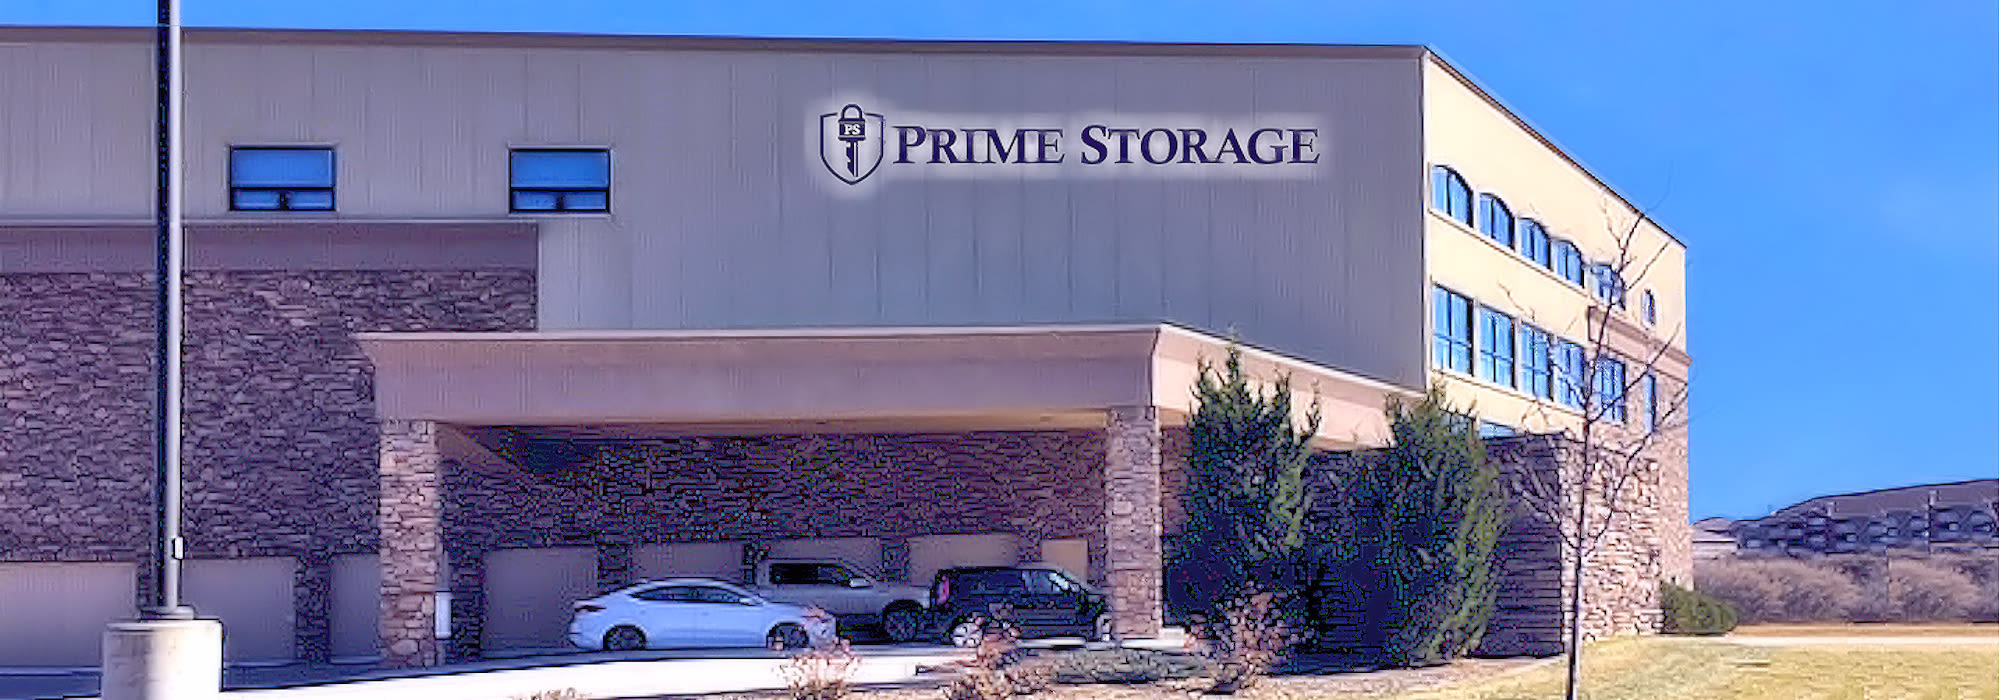 Prime Storage in Colorado Springs, Colorado